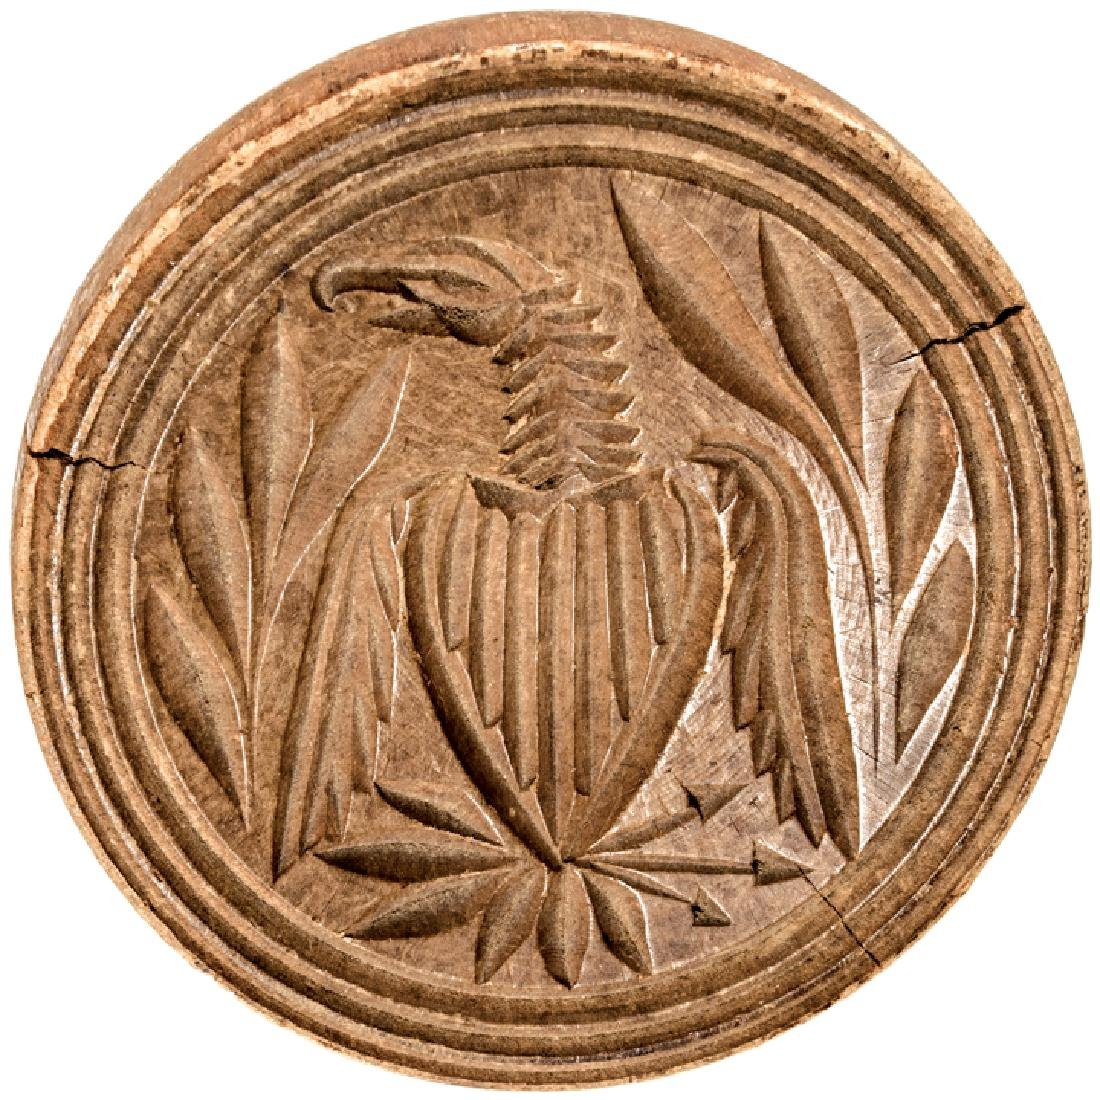 Early American Heraldic Eagle Butter Print Mold - 2